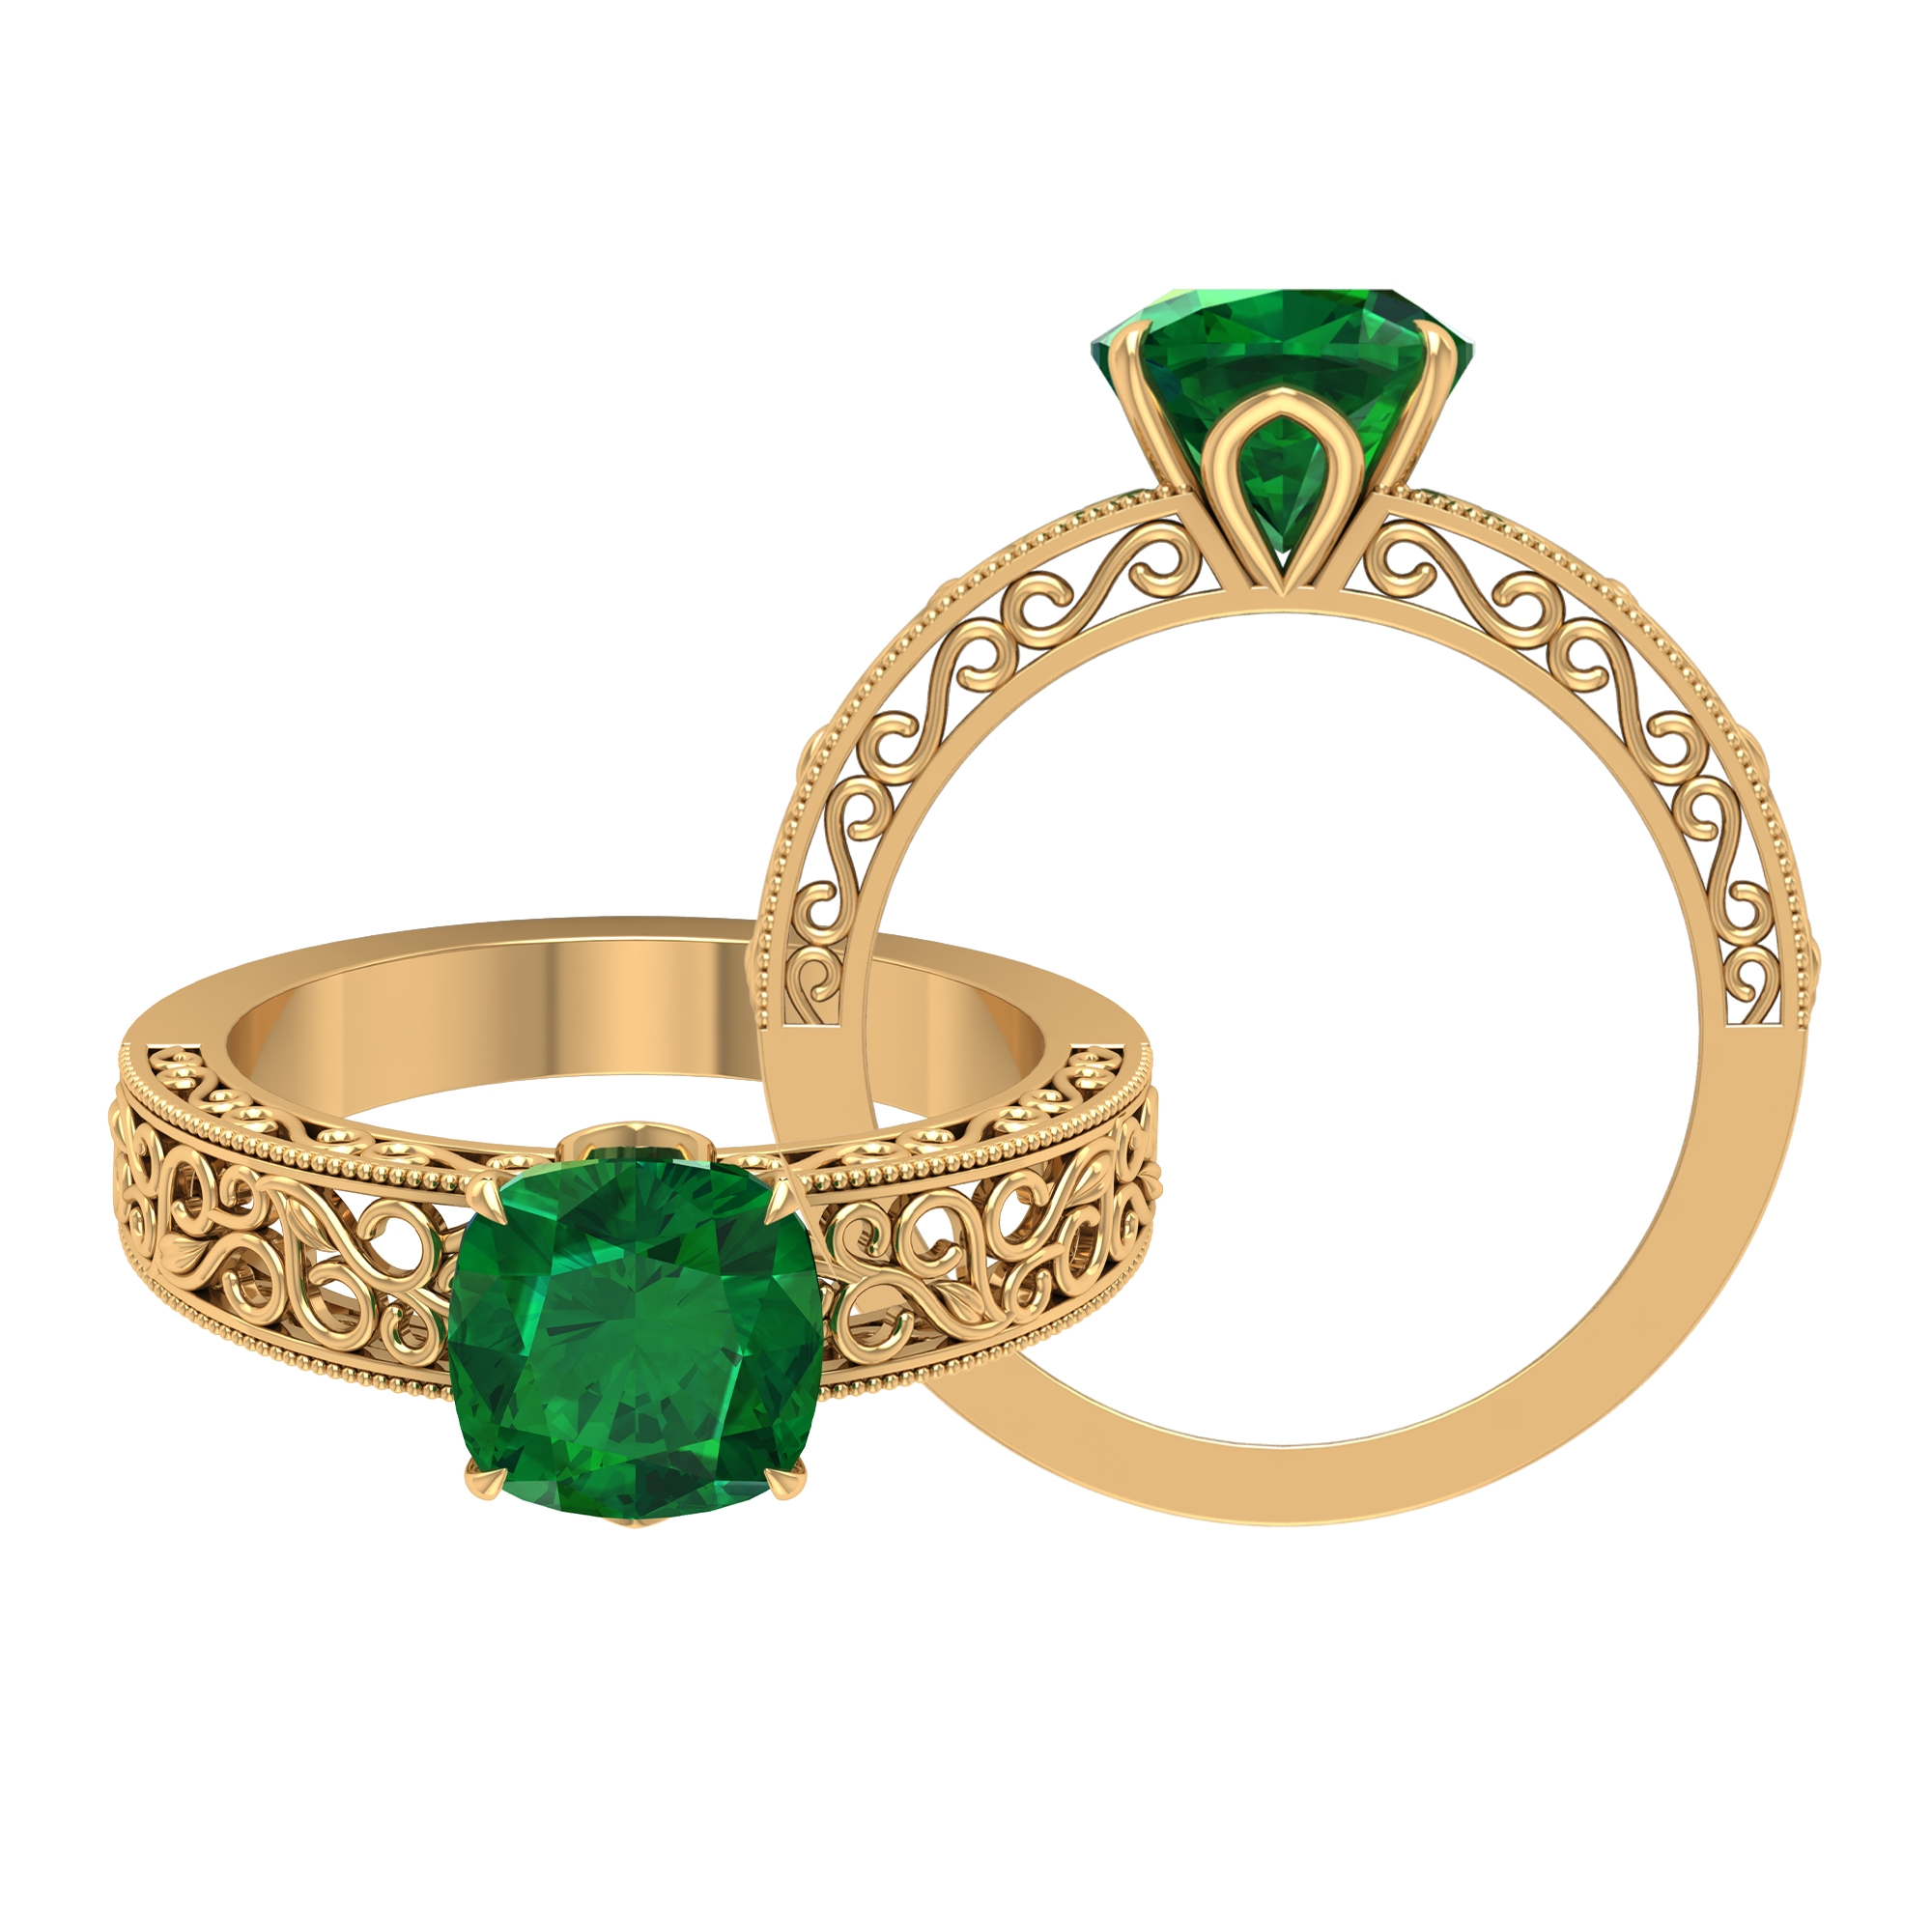 8 MM Claw Set Cushion Cut Solitaire Emerald Filigree Ring